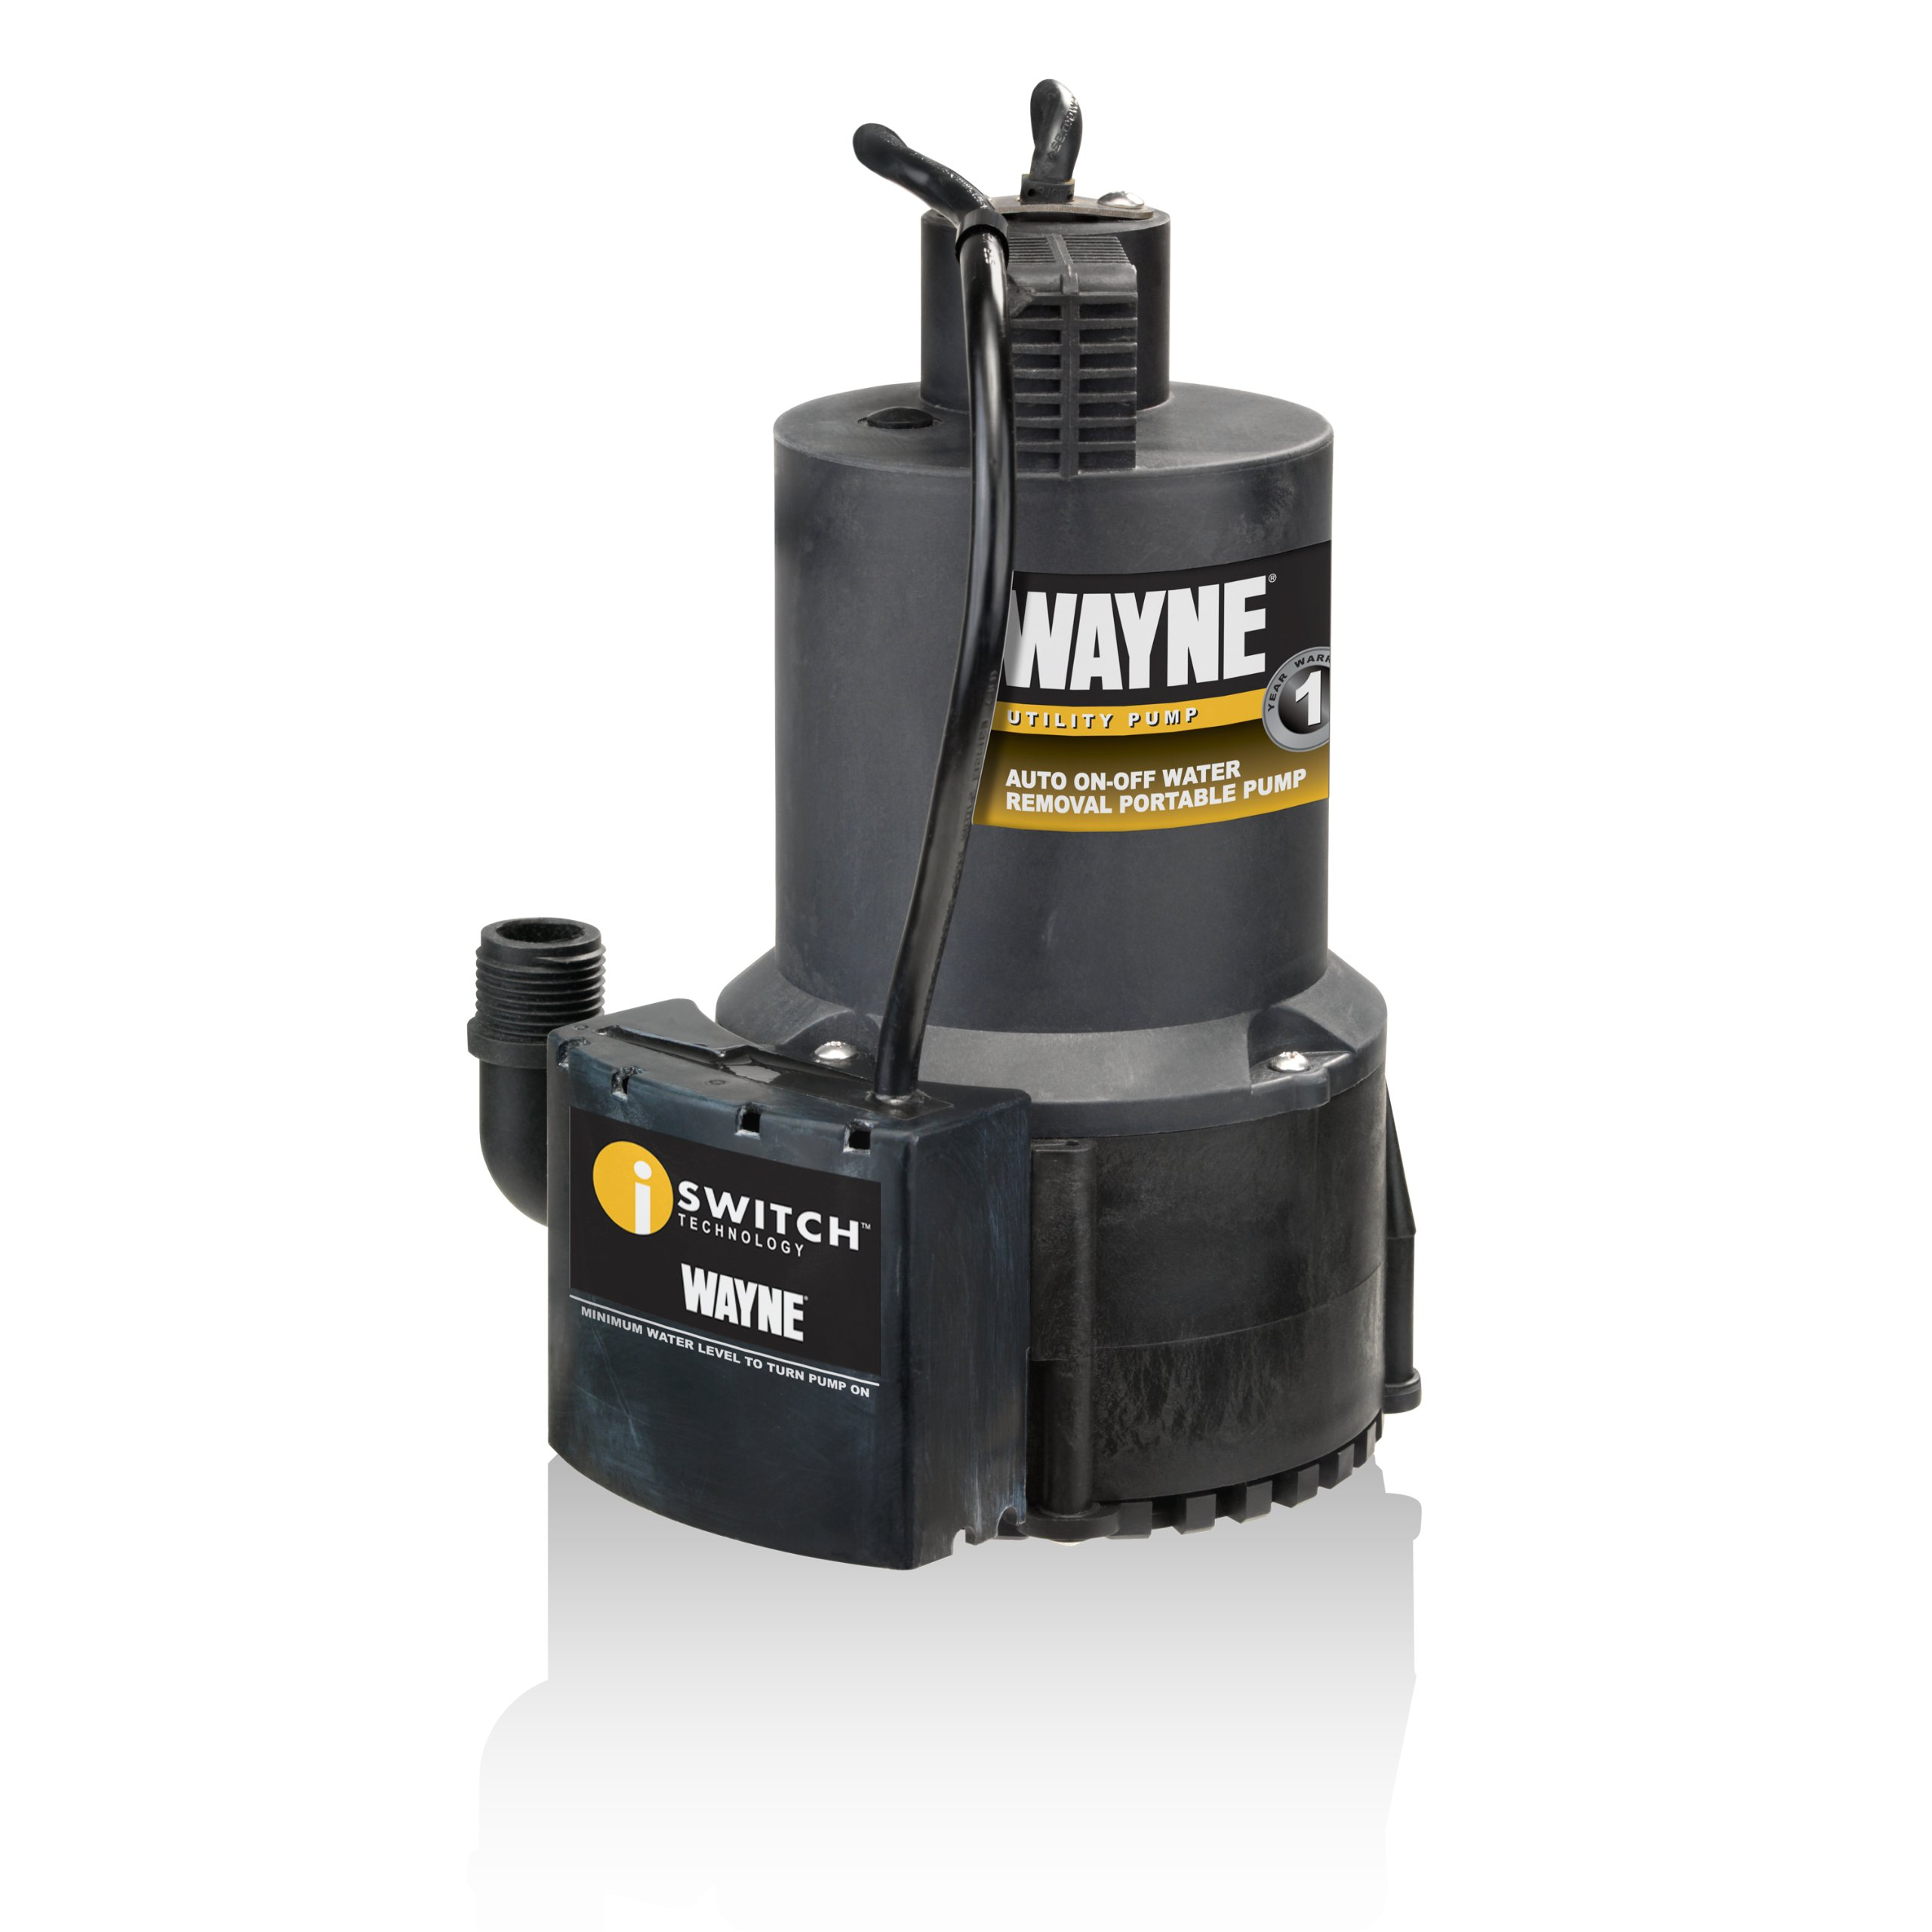 WAYNE EEAUP250 1/4 HP Automatic ON/OFF Electric Water Removal Pump